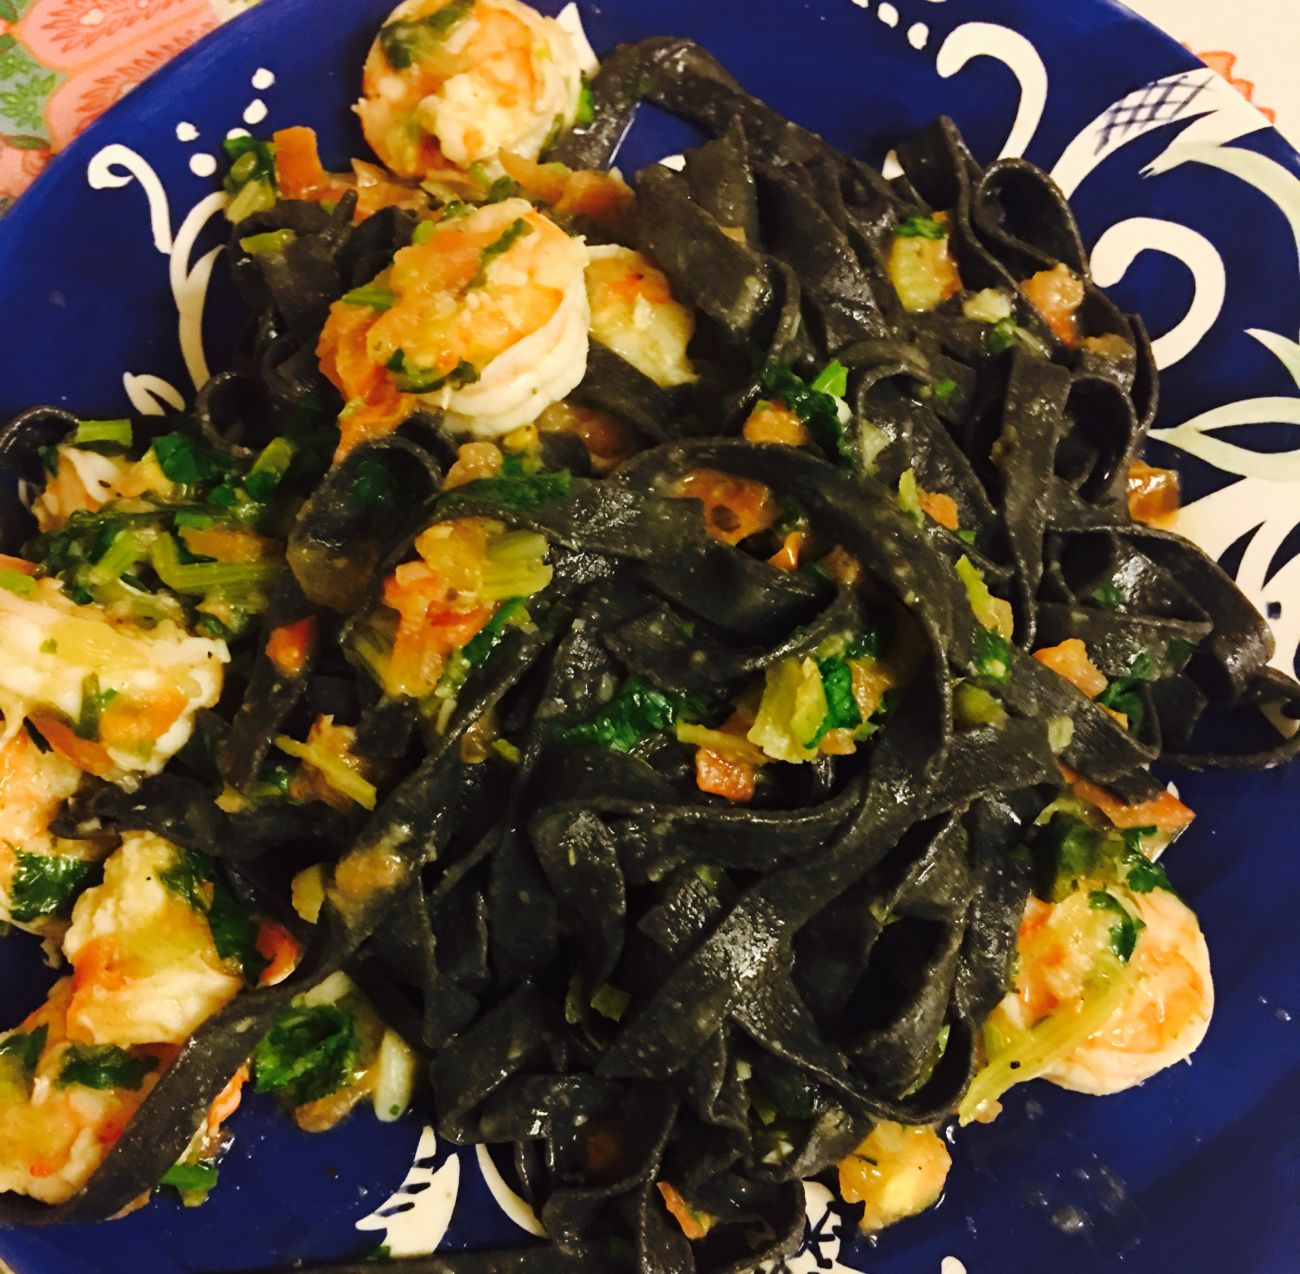 Squid Ink Pasta with Shrimp and Tomato Sauce